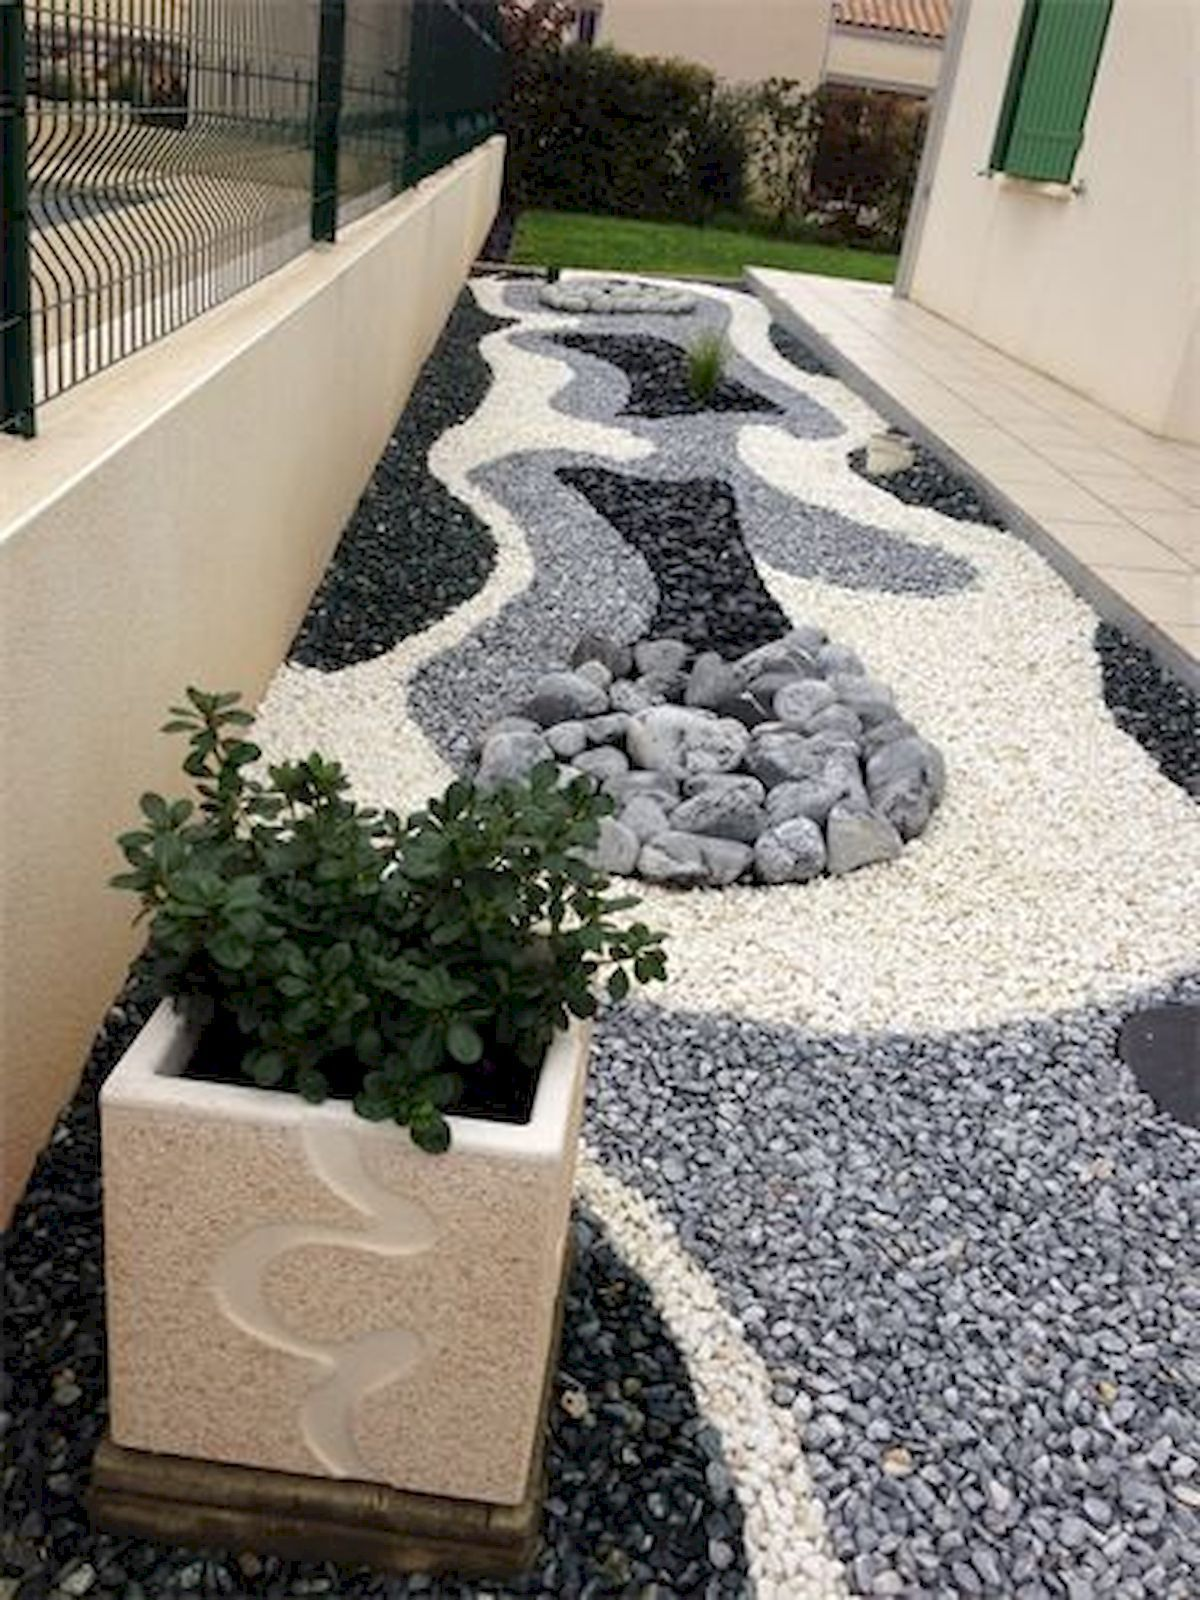 70 Magical Side Yard And Backyard Gravel Garden Design Ideas 22 Rock Garden Landscaping Gravel Landscaping Landscape Design